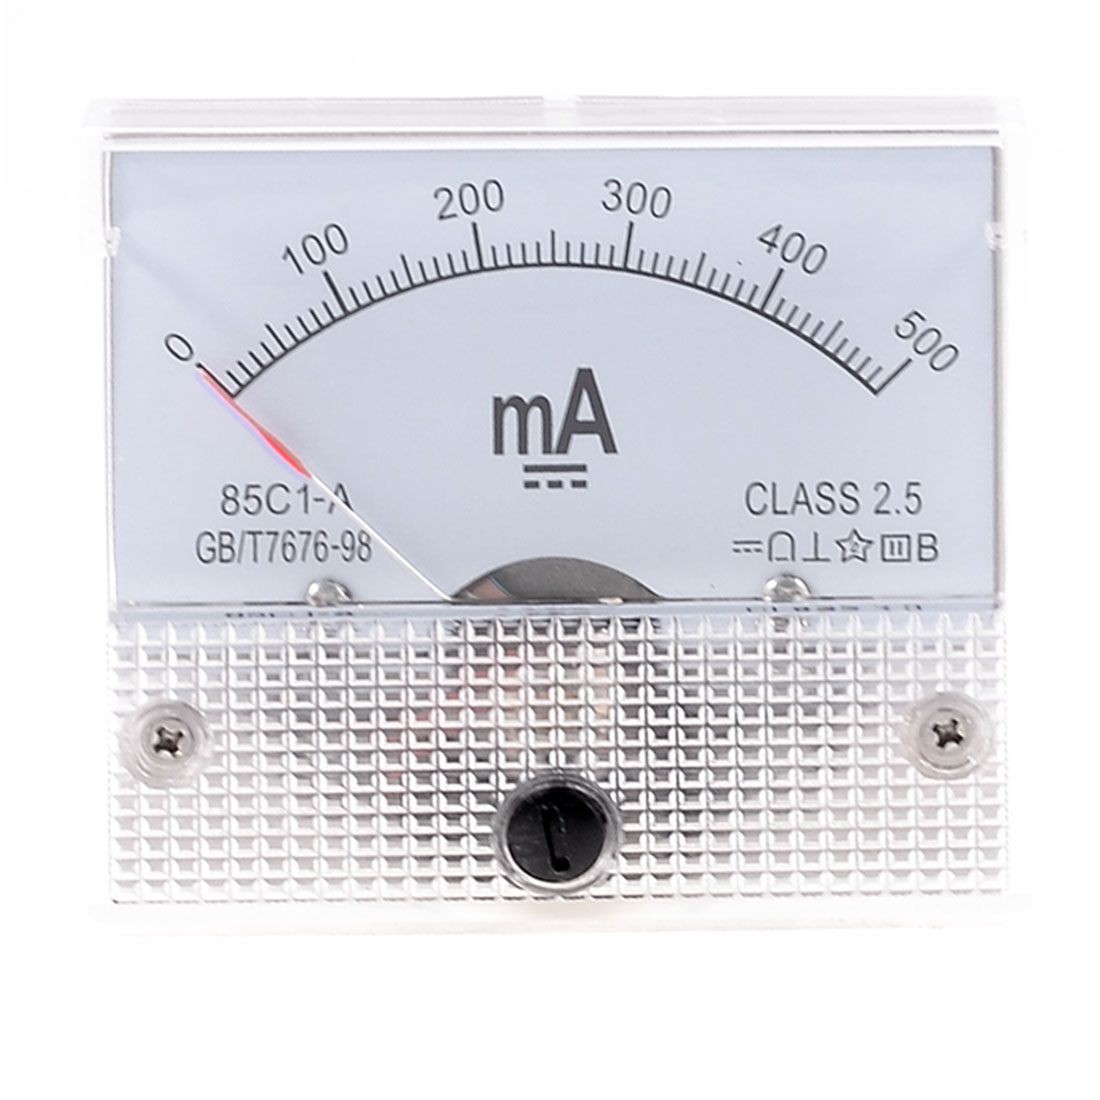 85C1-A 2.5 Accuracy DC 0-500mA Analog Panel Meter Ammeter Amperemeter